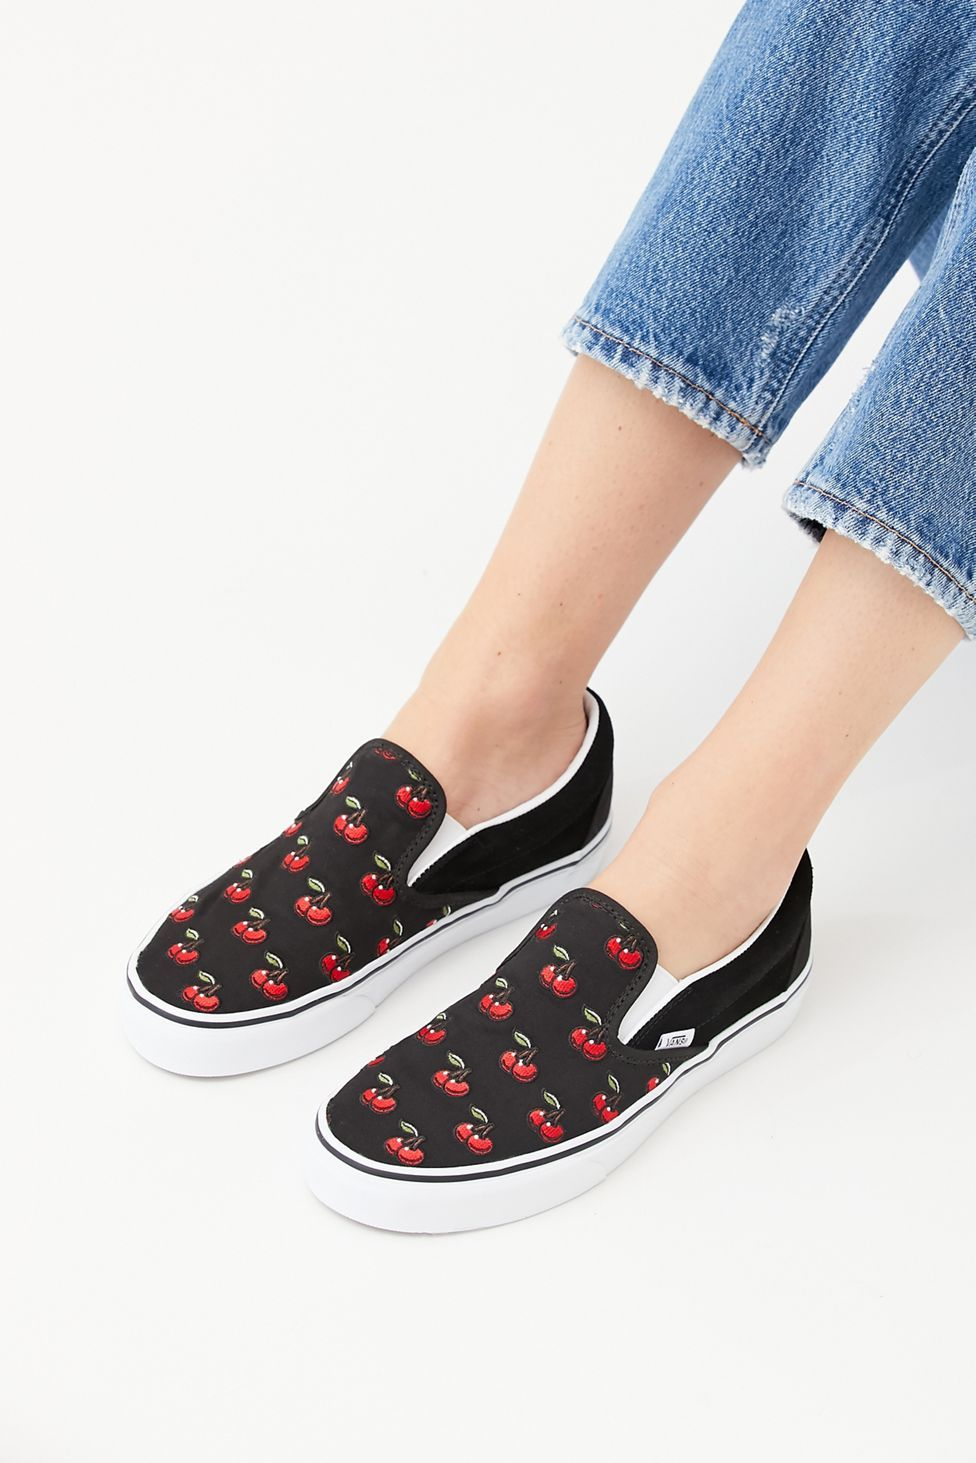 Cherry Vans Slip On Online Hotsell, UP TO 51% OFF